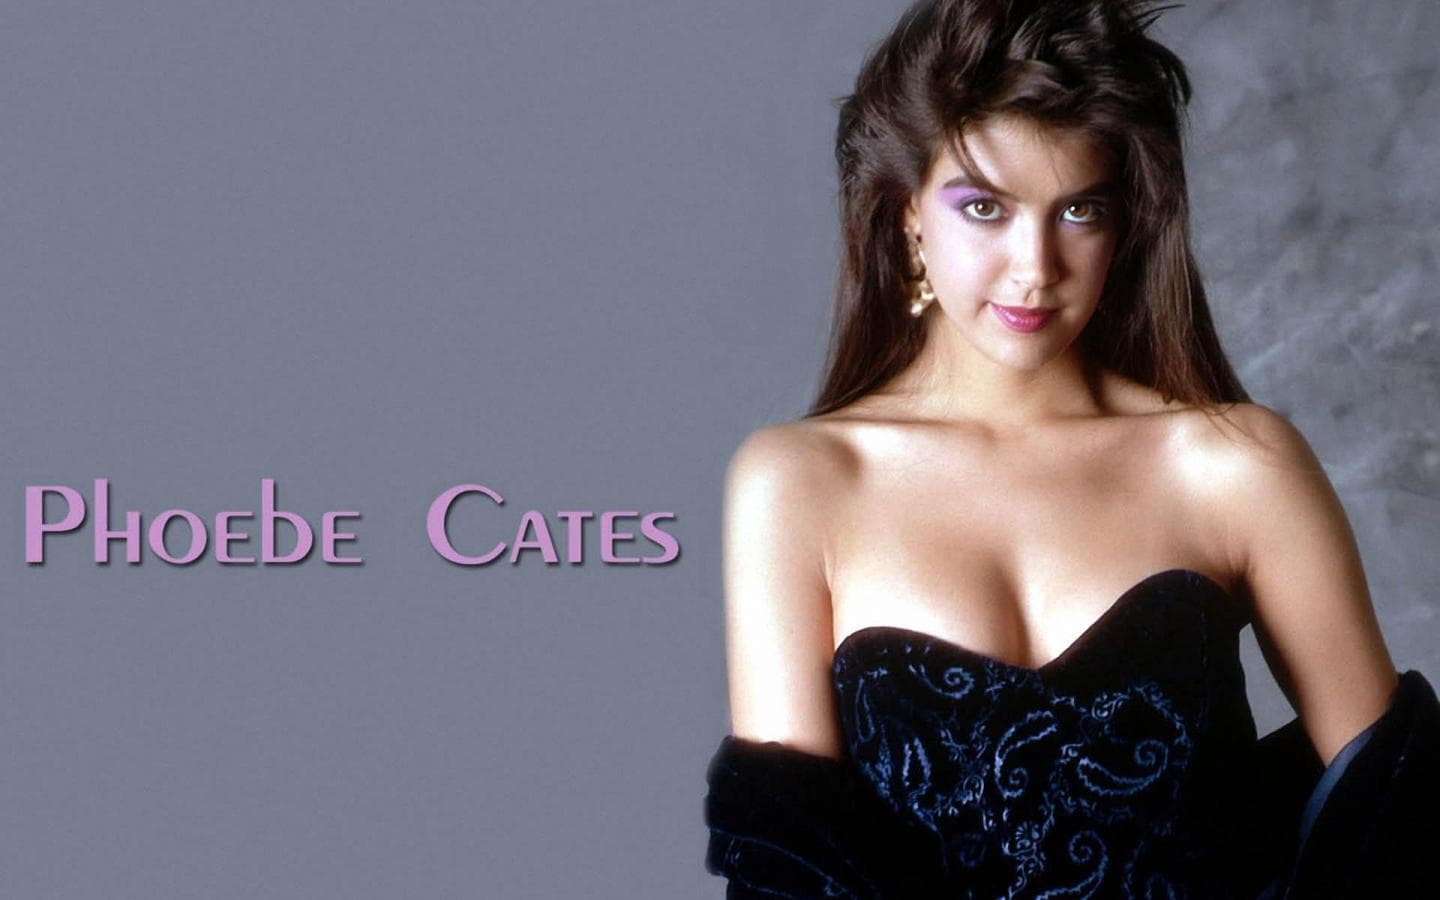 1440x900 - Phoebe Cates Wallpapers 29